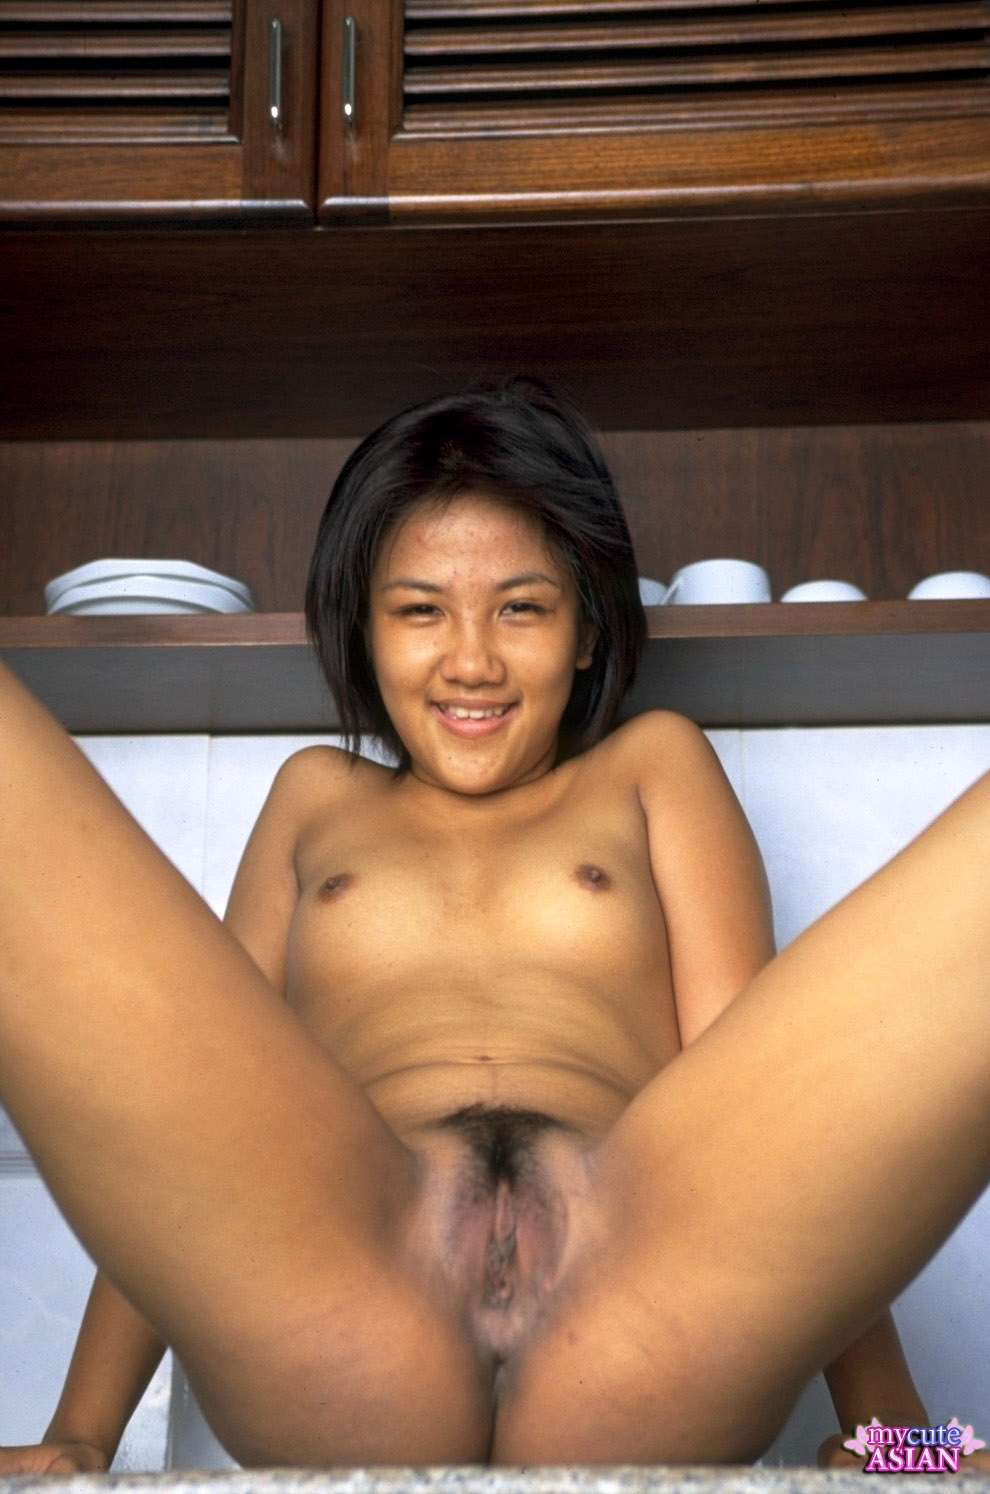 Asian spreading pussies confirm